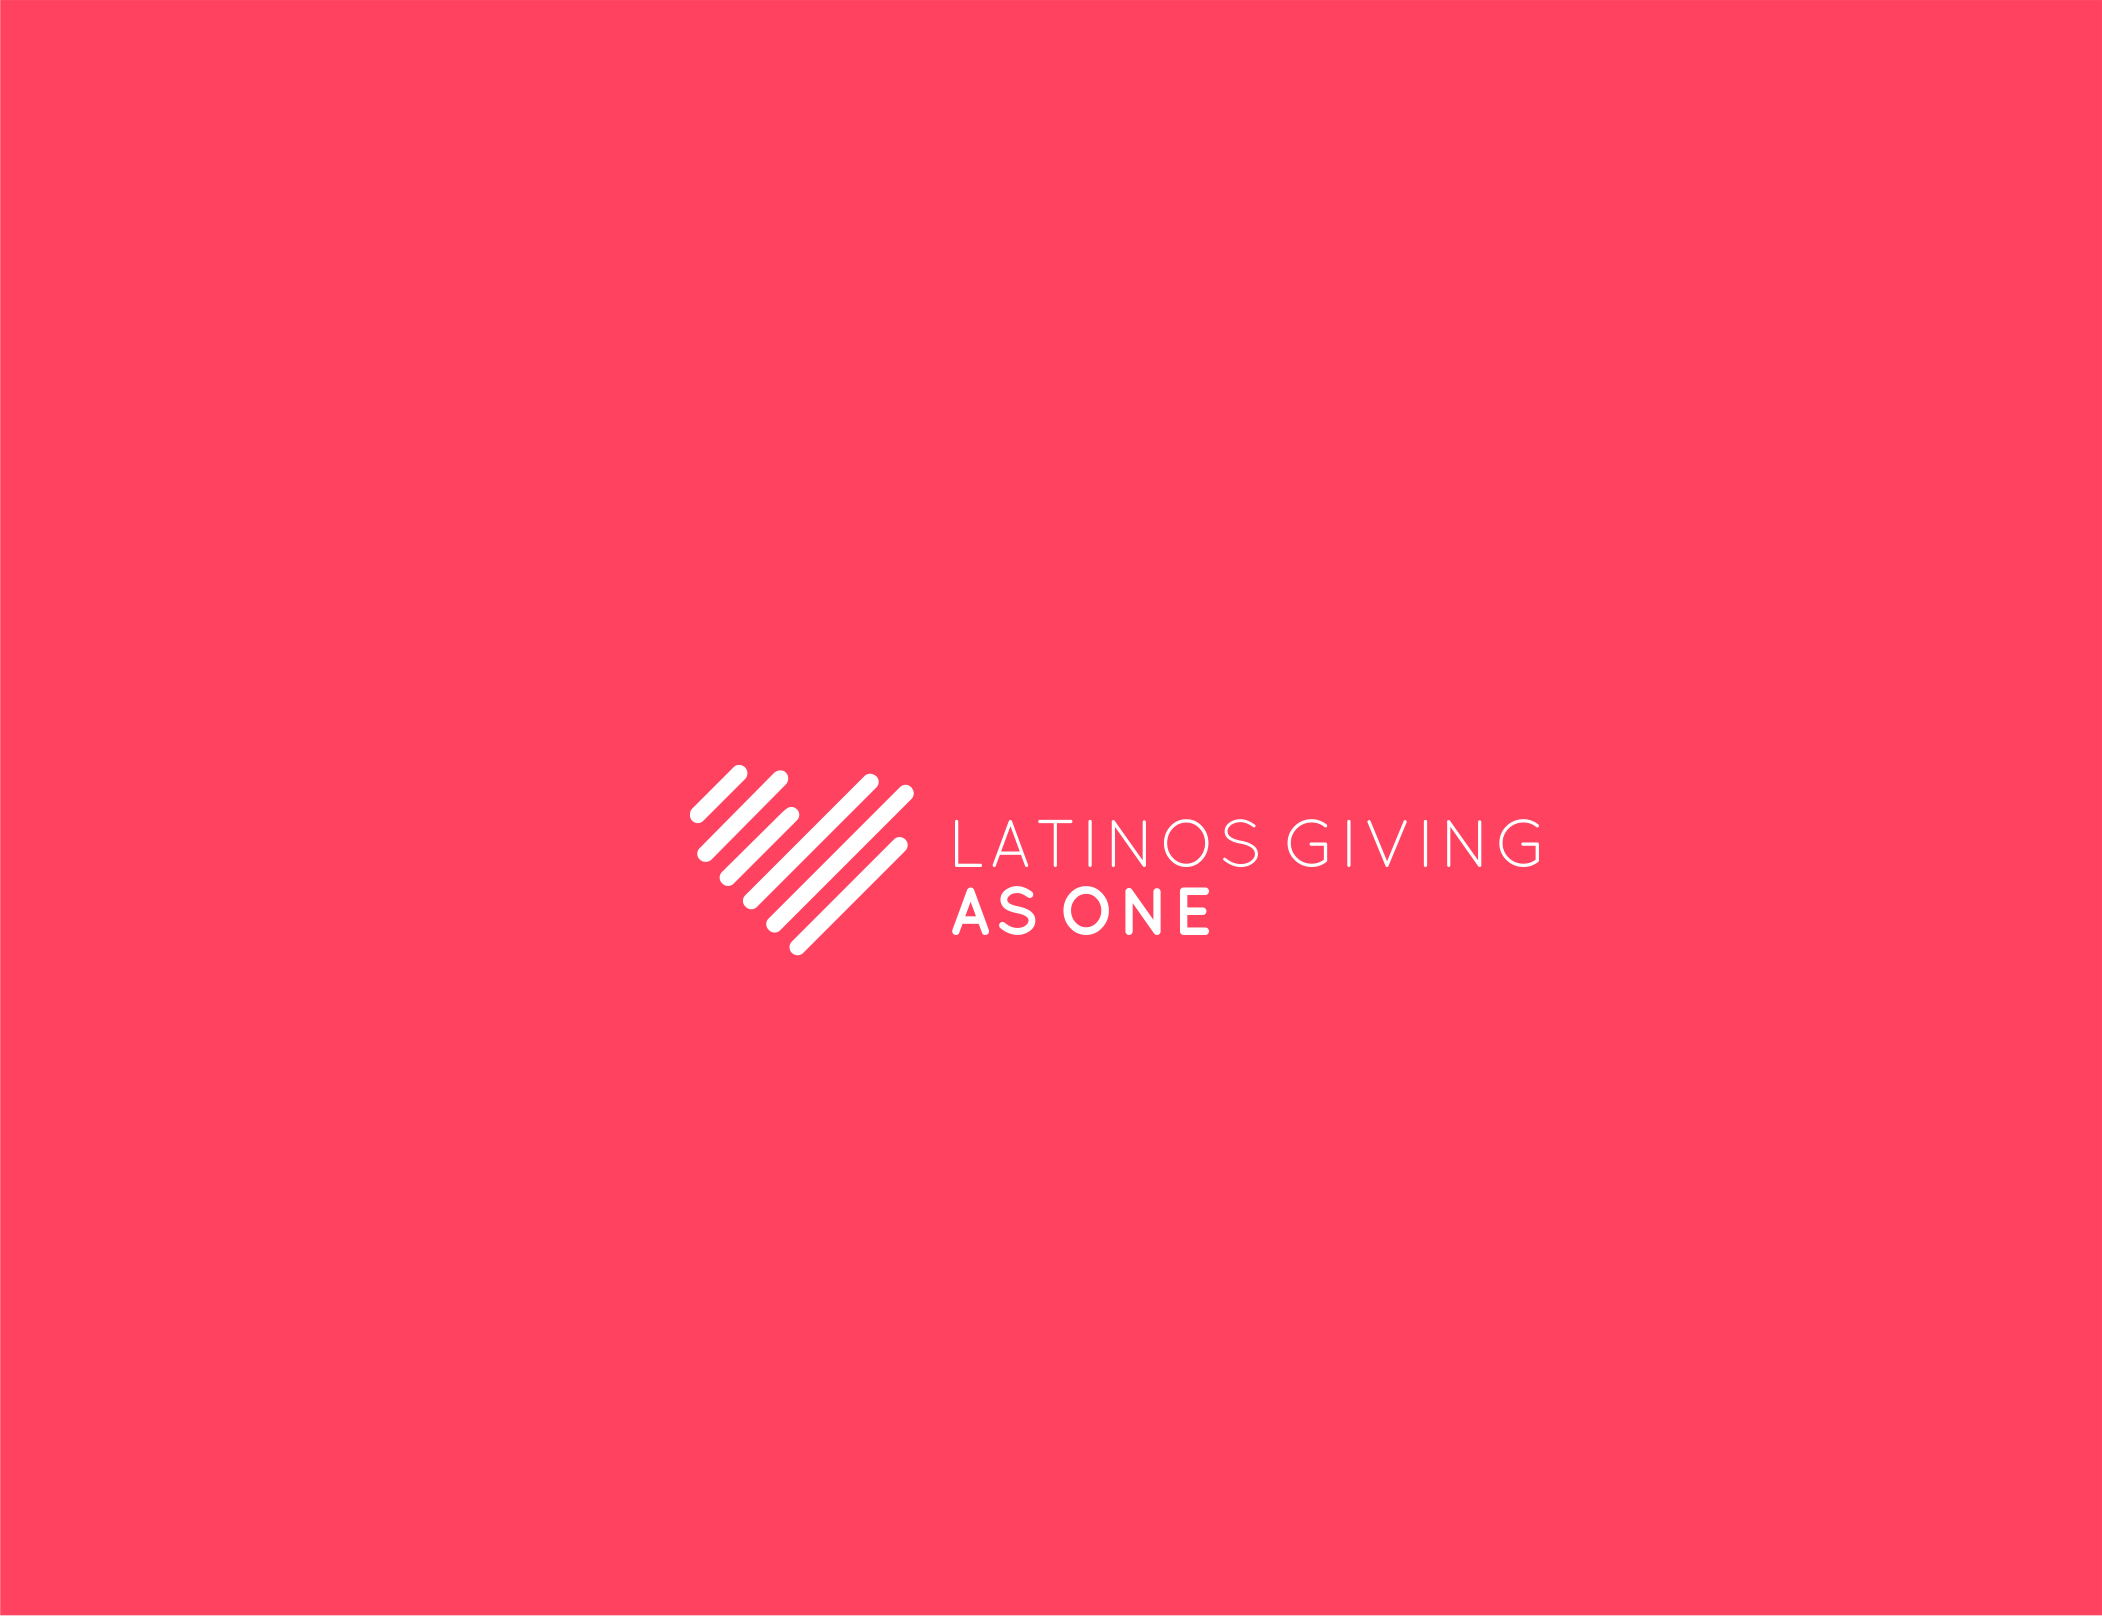 Latinos Giving As One